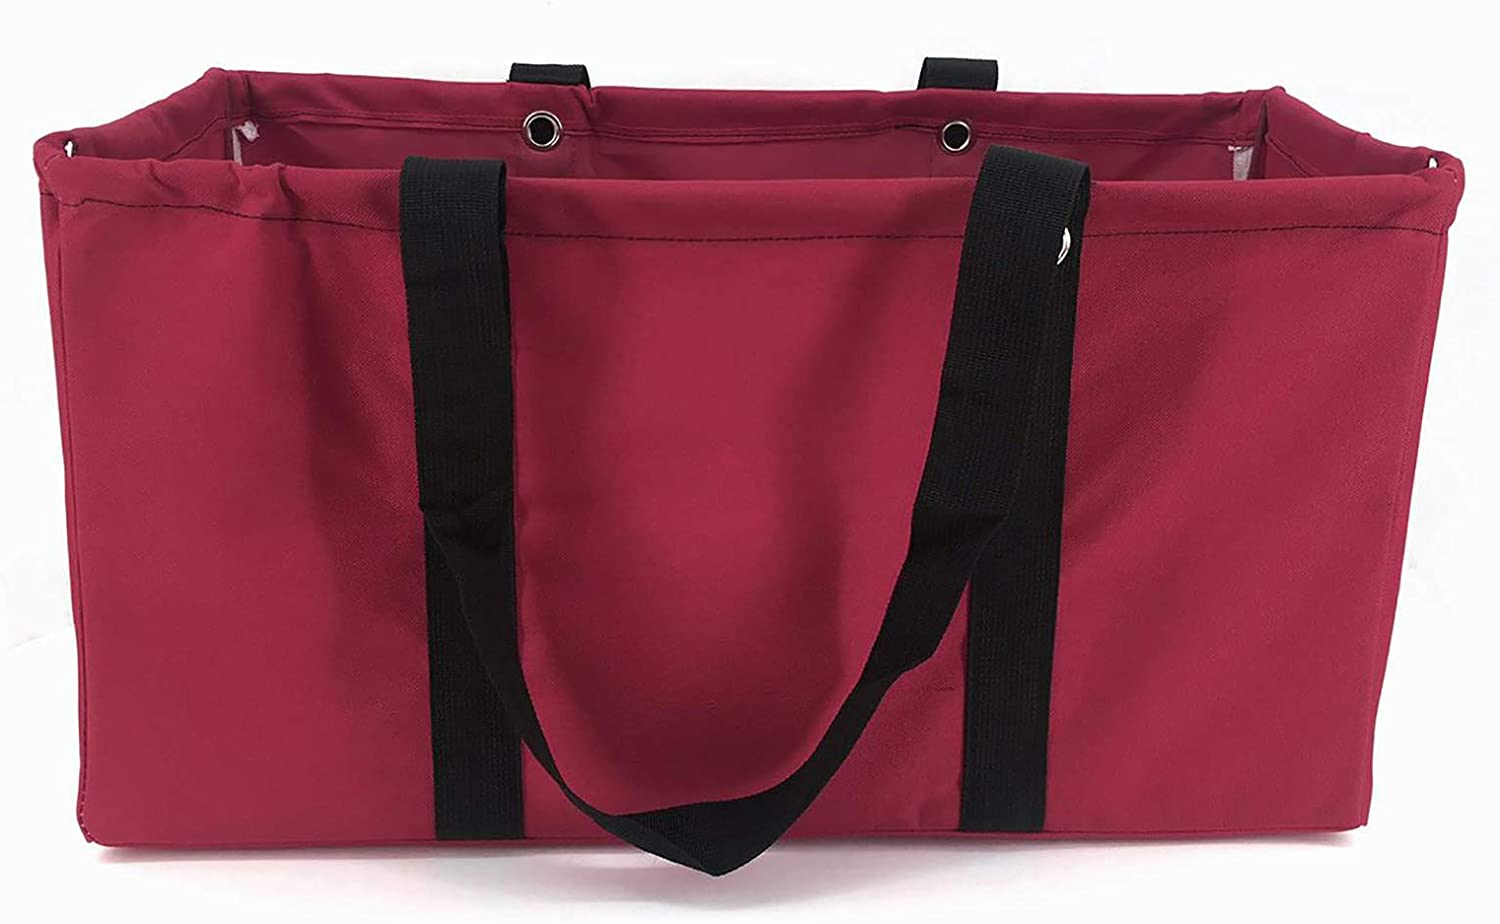 April Fashions All Purpose Open Top Utility Bag, Collapsible Wire Frame Trunk Organizer, Market, Utility Bags (NU-202C Maroon)